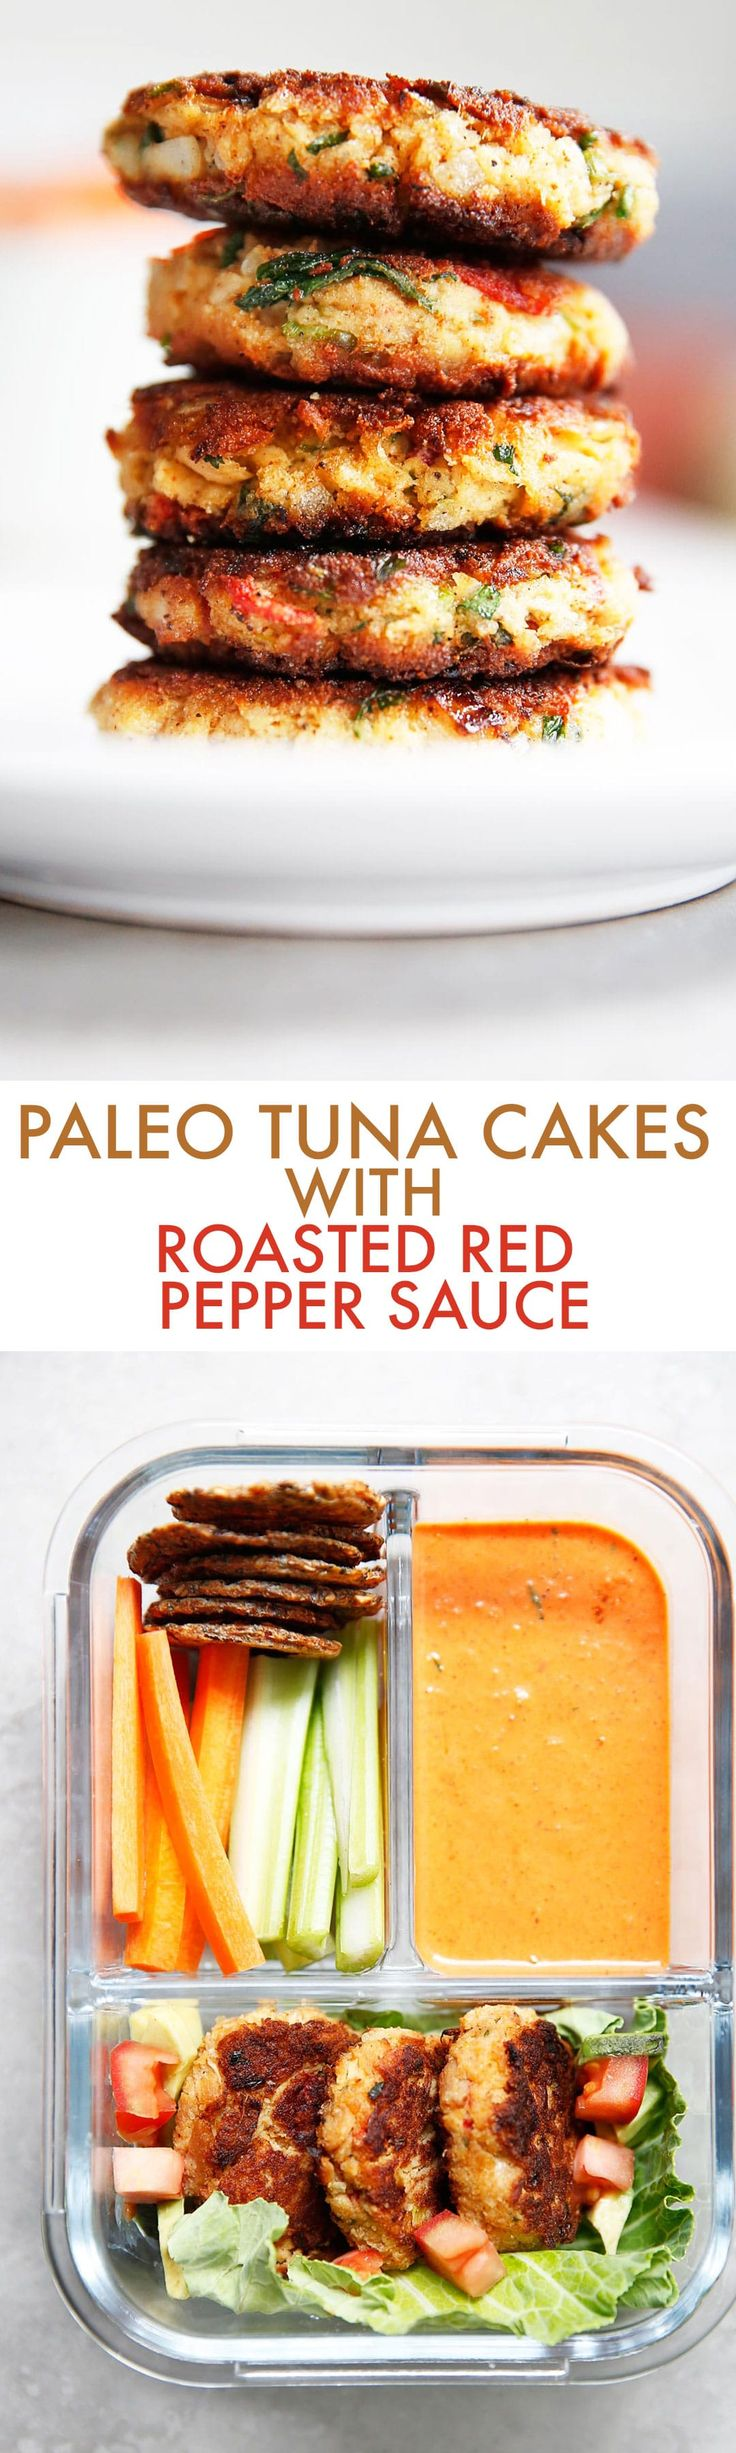 Looking for an easy, low carb lunch to meal prep? These Paleo Tuna Cakes with Roasted Red Pepper Sauce are flavorful, easy to make, and perfect for meal prep lunches all week long. Everybody will love this tuna cakes recipe, and they are made gluten-free, grain-free, low carb, and paleo-friendly! #tuna #healthy #lunch #easy #keto